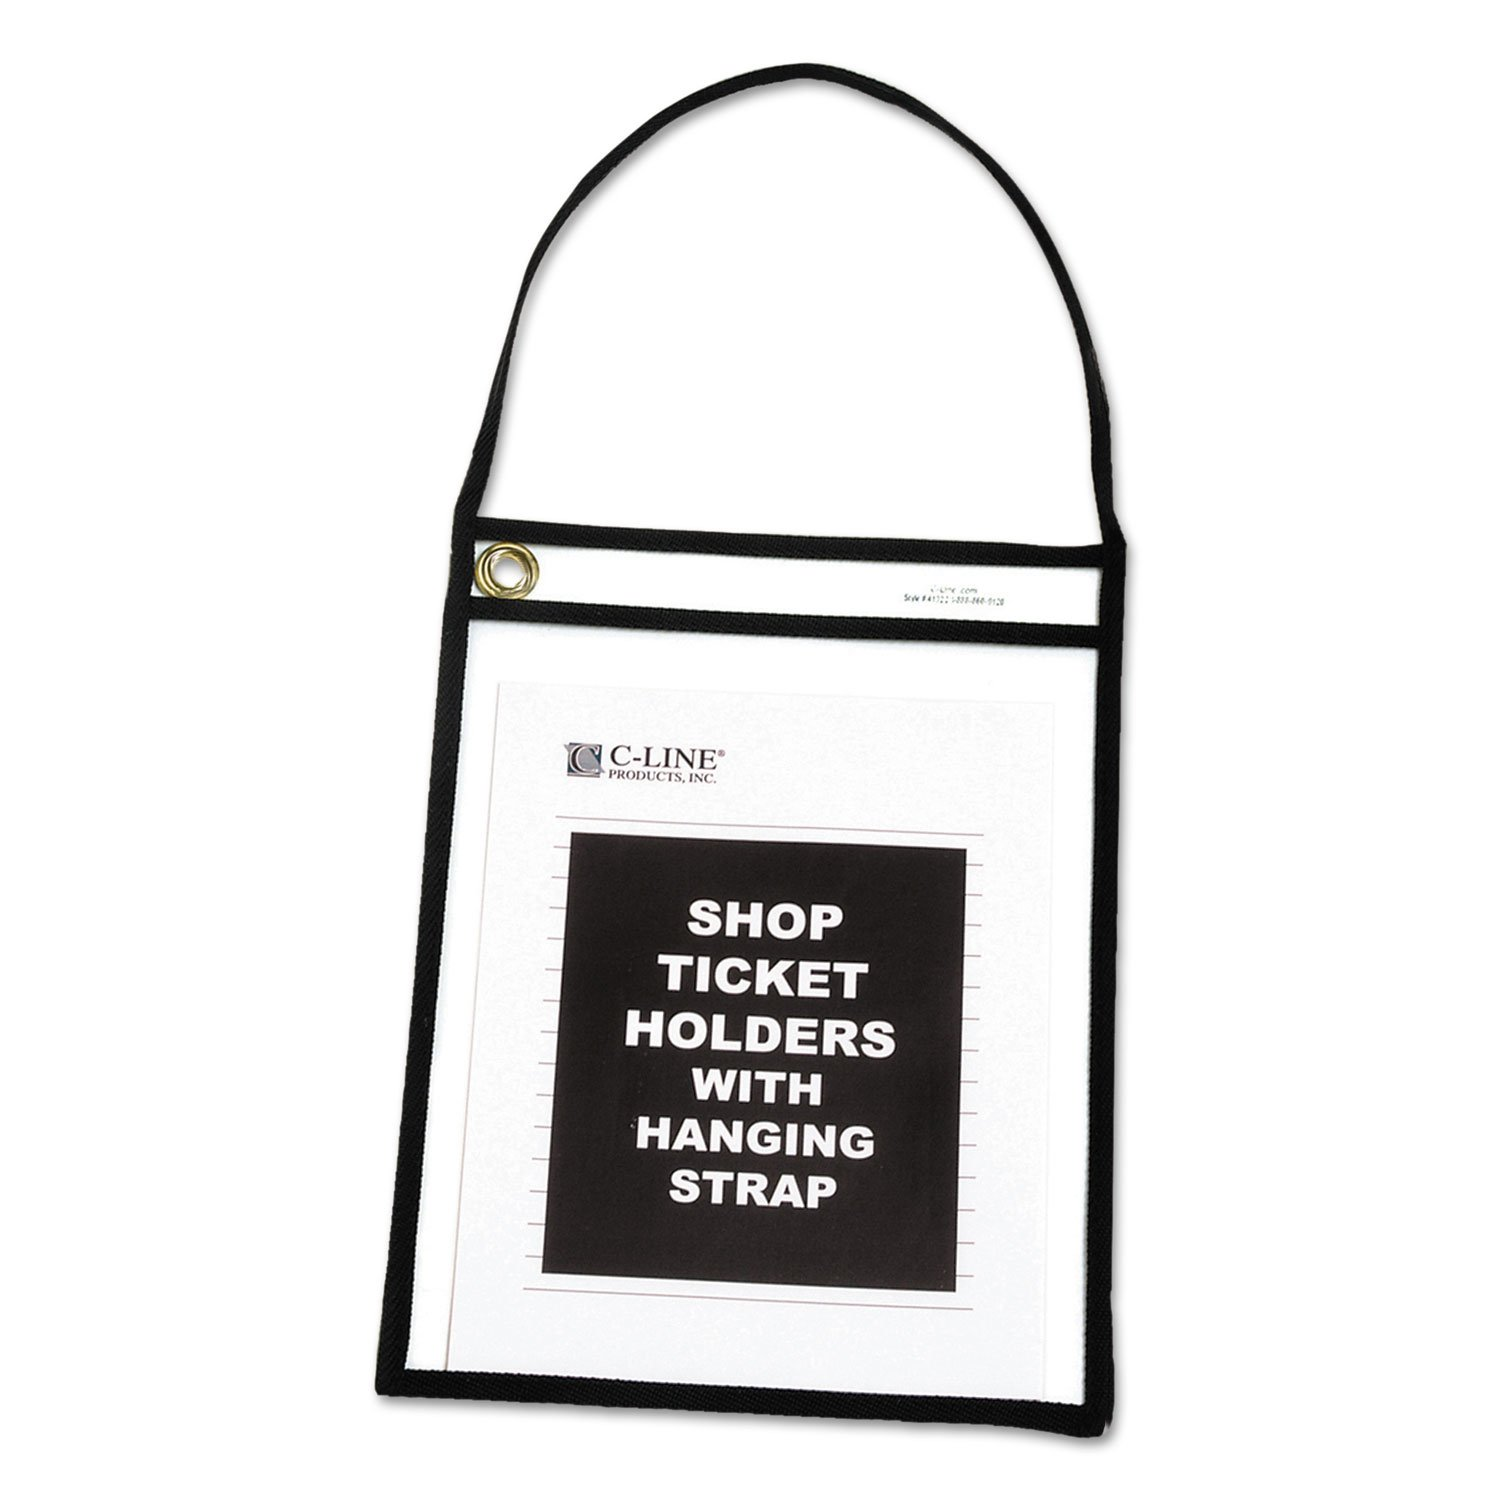 C-Line 41922 Shop Ticket Holder with Strap, Black, Stitched, 75'', 9 x 12 (Box of 15)